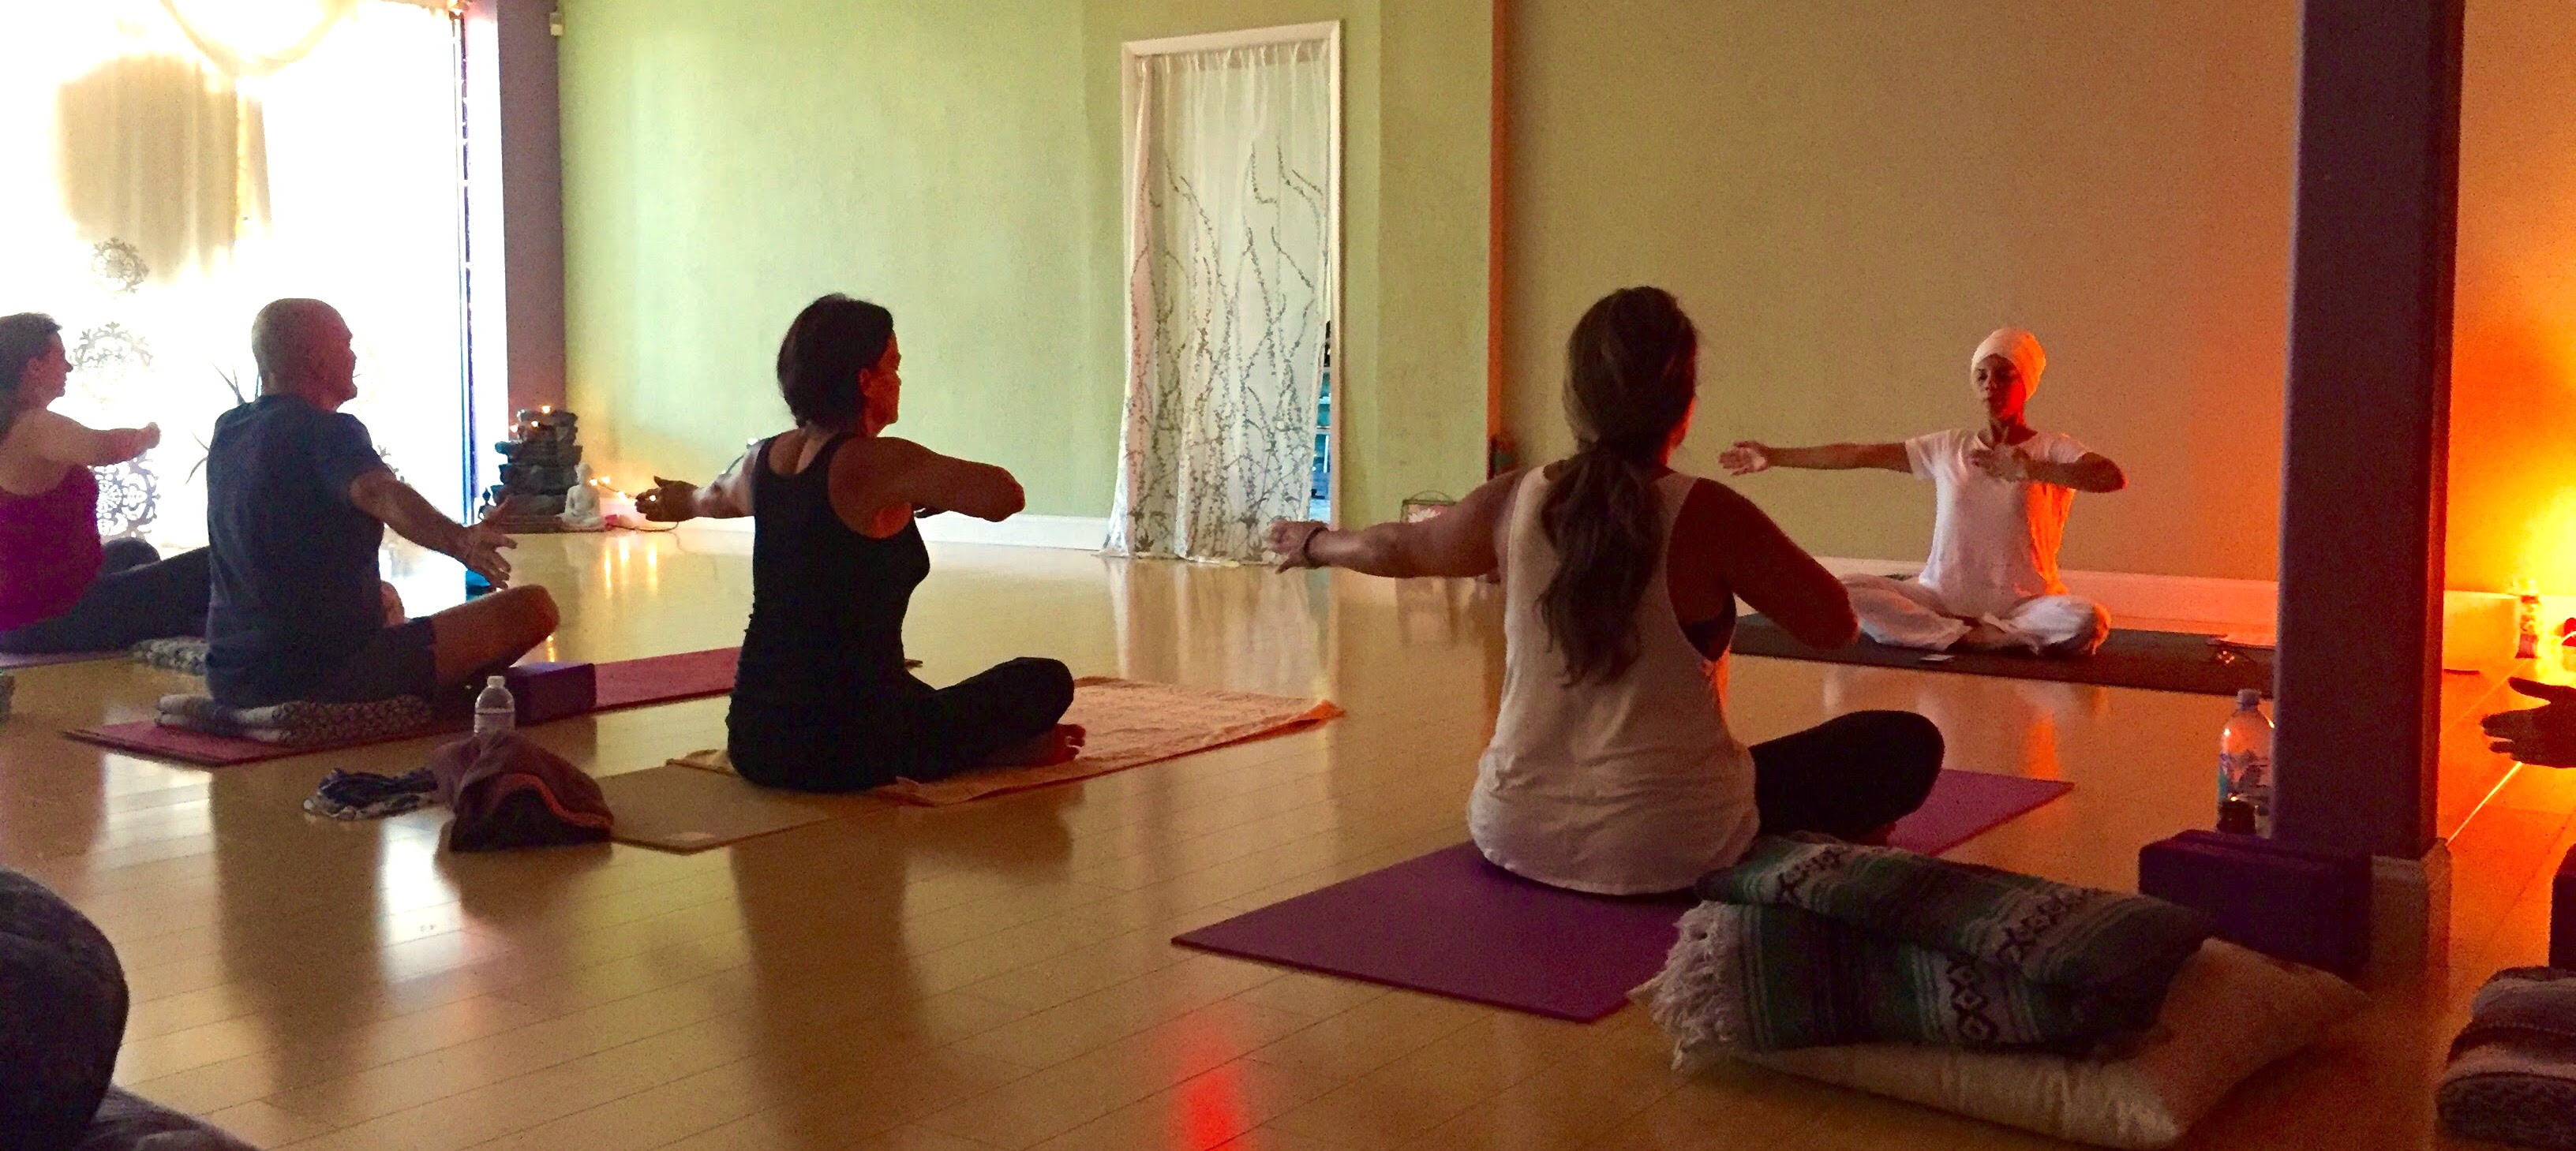 Kundalini Yoga Faq What You Should Know About Kundalini Before Class